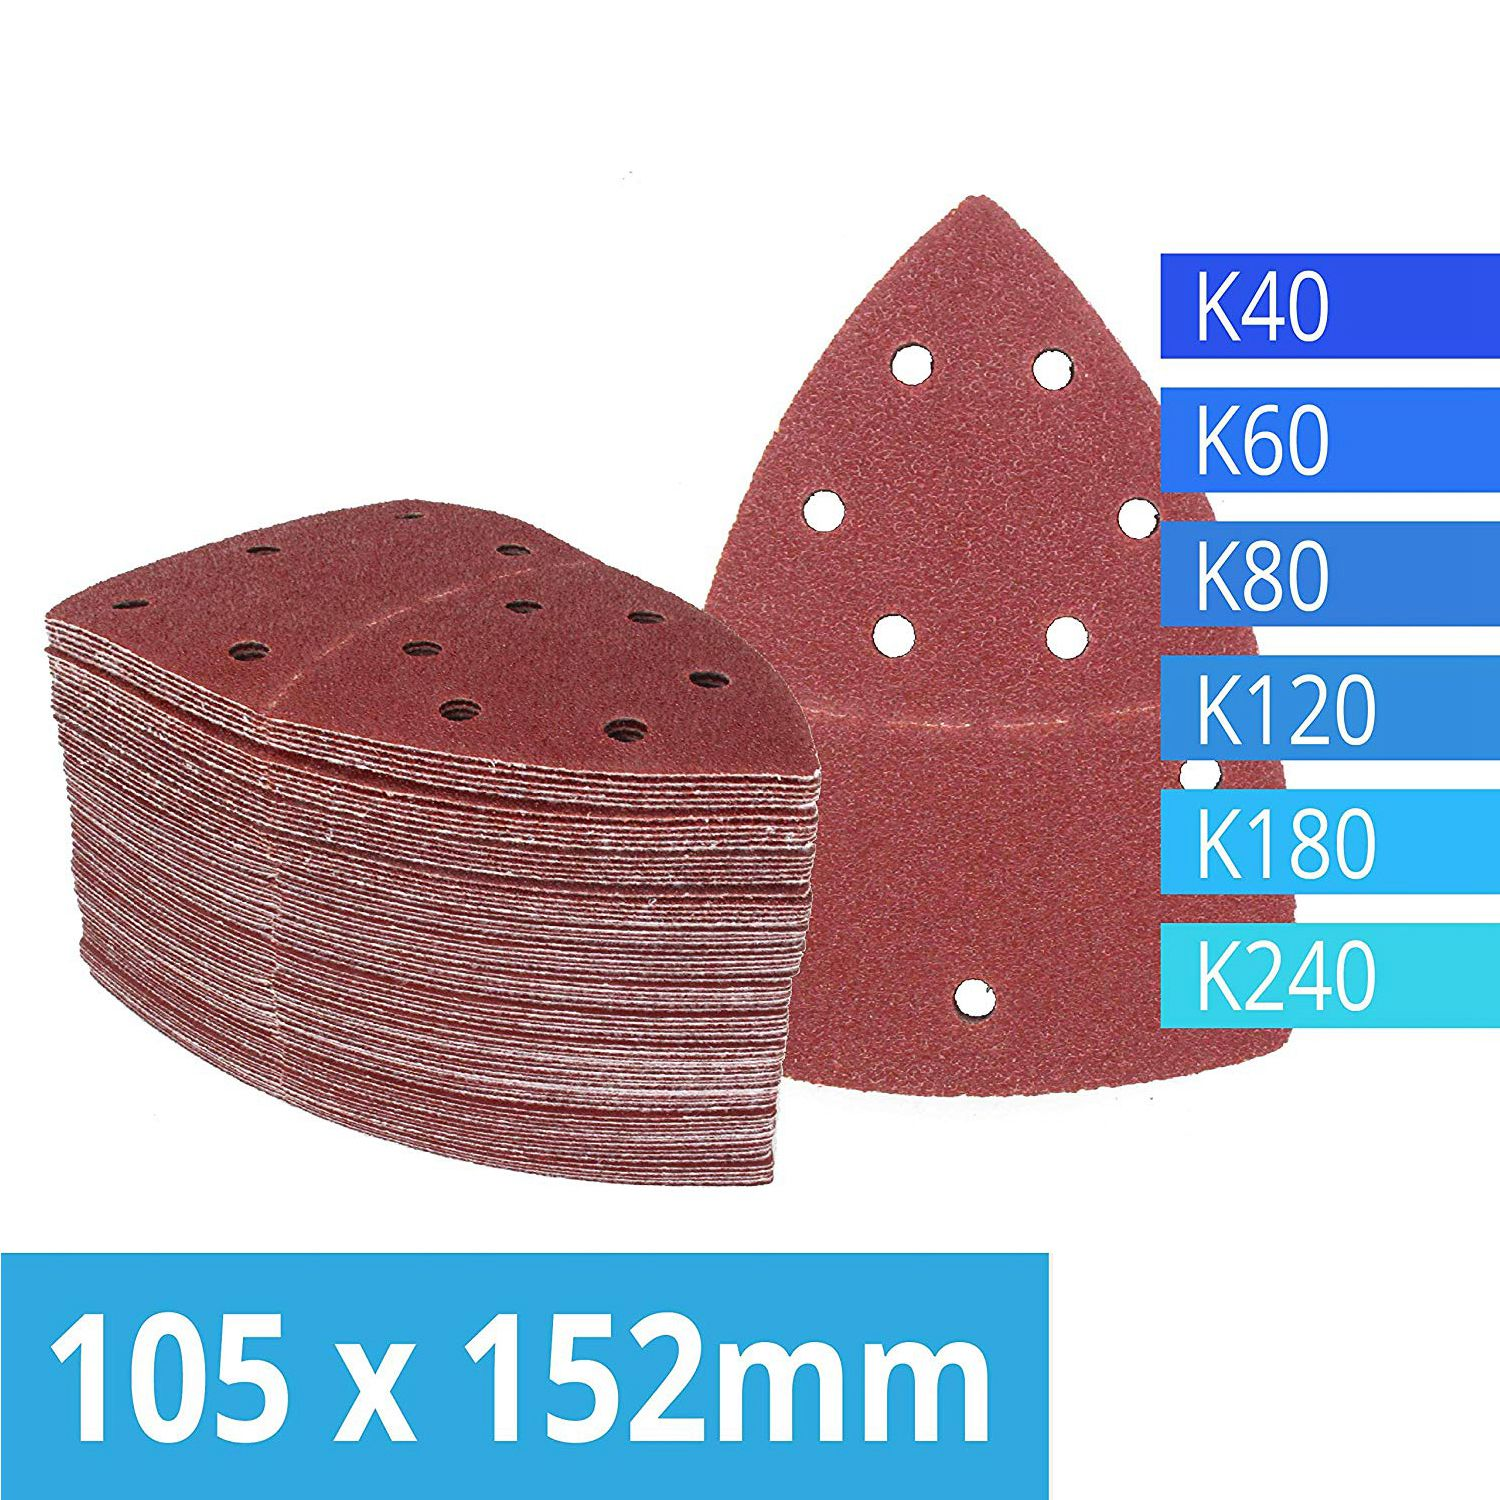 Pack Of 120 Hook And Loop Sanding Sheets 105 X 152 Mm Grit 20 Each Of 40/60/80/120/180/240 Sandpaper For Multi Sander Bosch